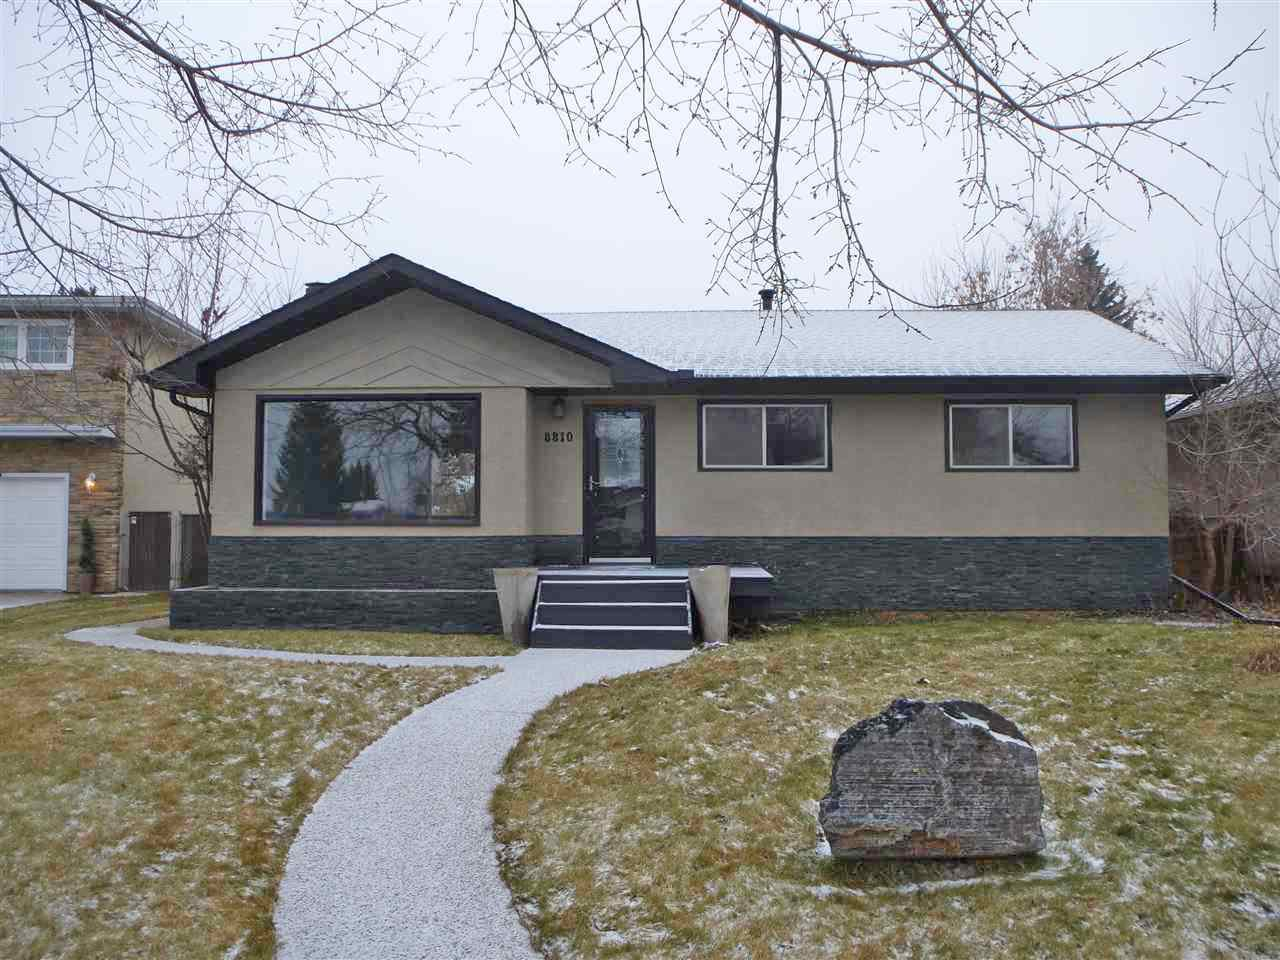 Main Photo: 8810 159A ST NW in Edmonton: Zone 22 House for sale : MLS®# E4044366